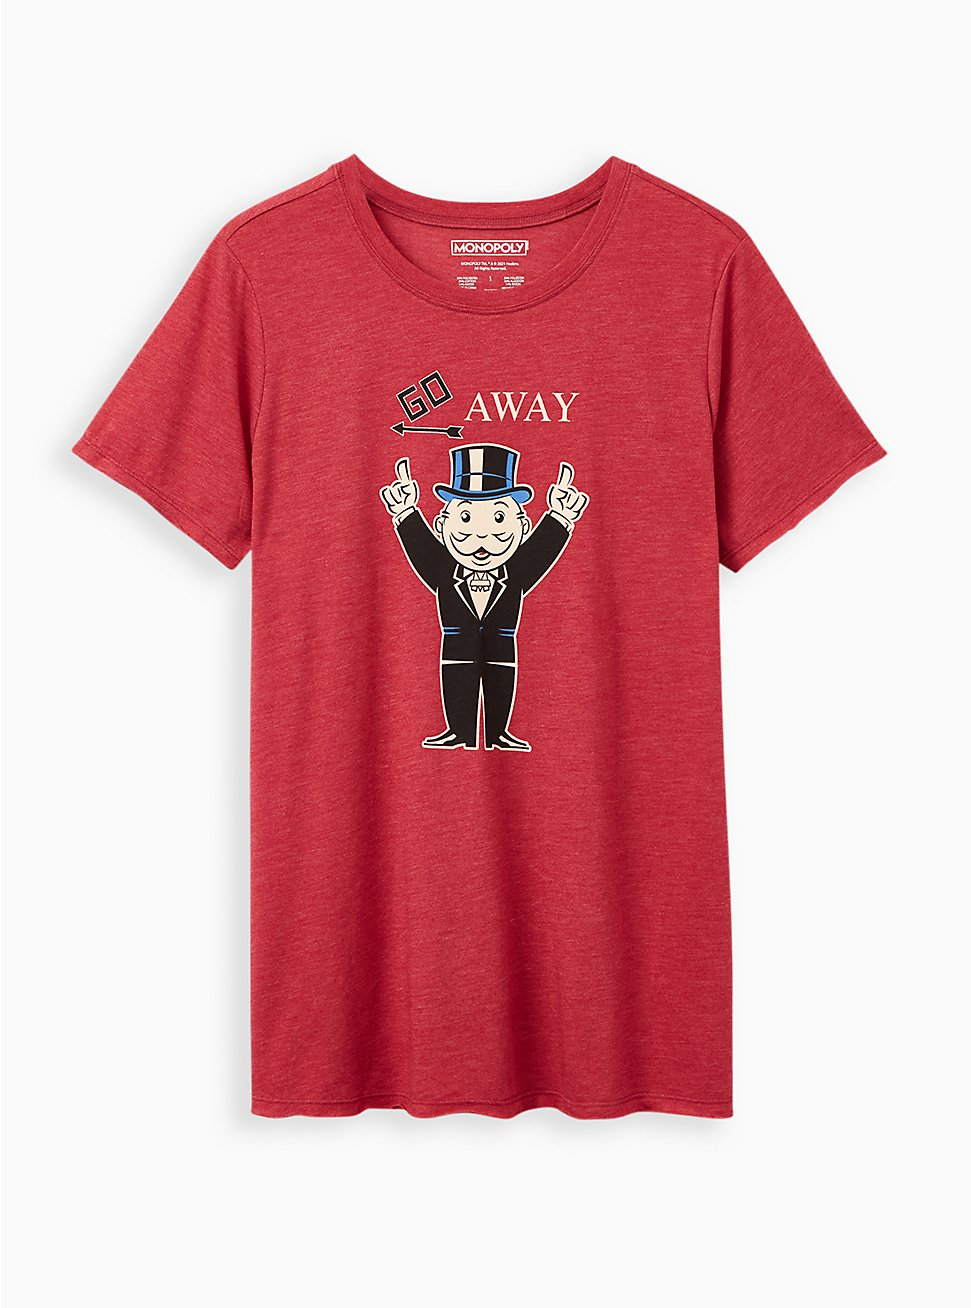 Plus Size Slim Fit Crew Tee – Monopoly Go Away Red, RED, hi-res